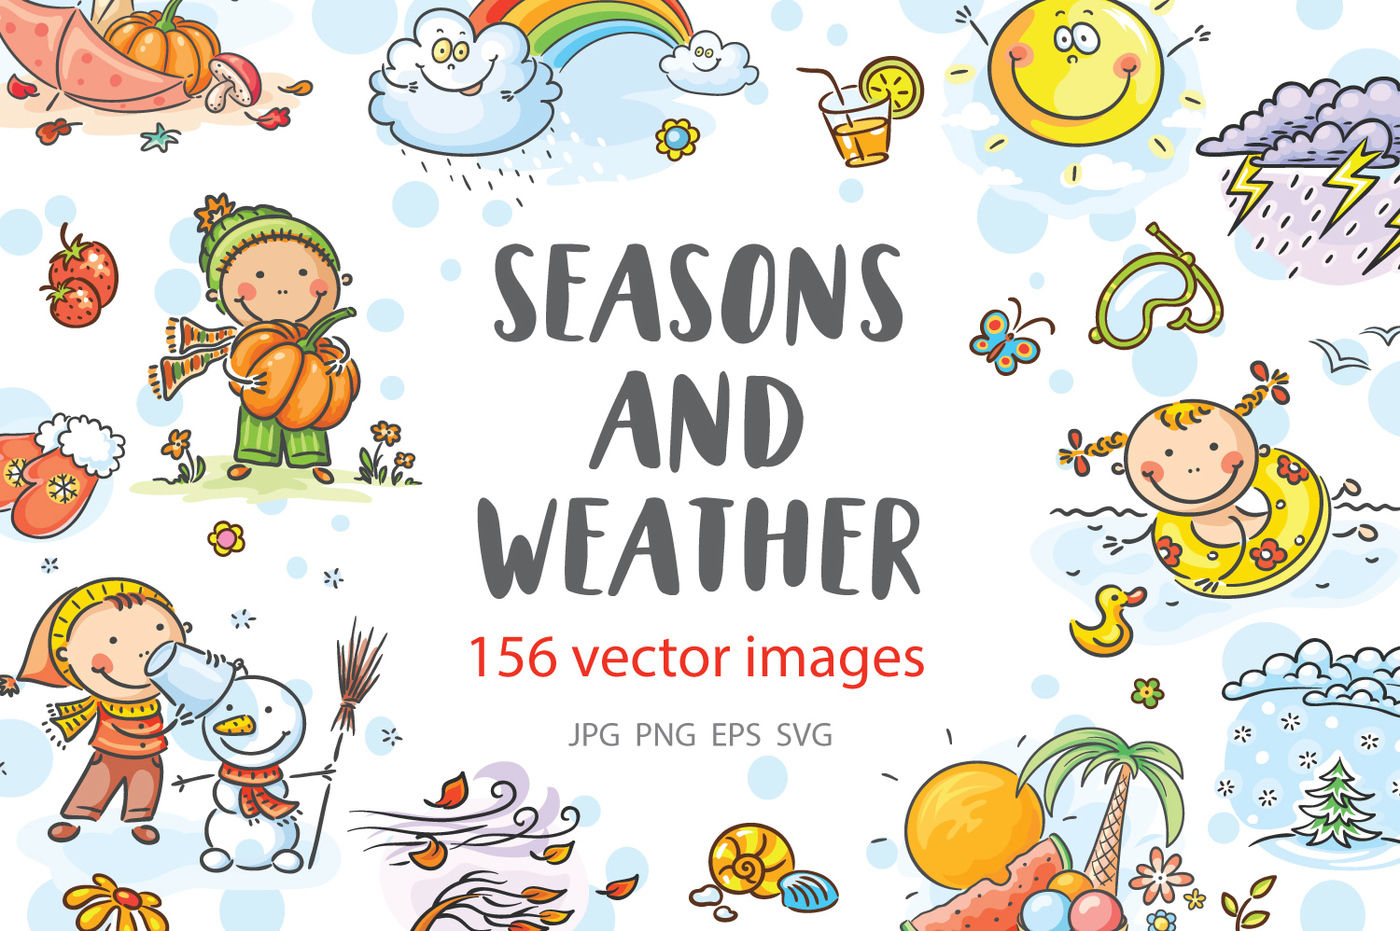 Kids Illustrations Of Different Activities During The Four Seasons